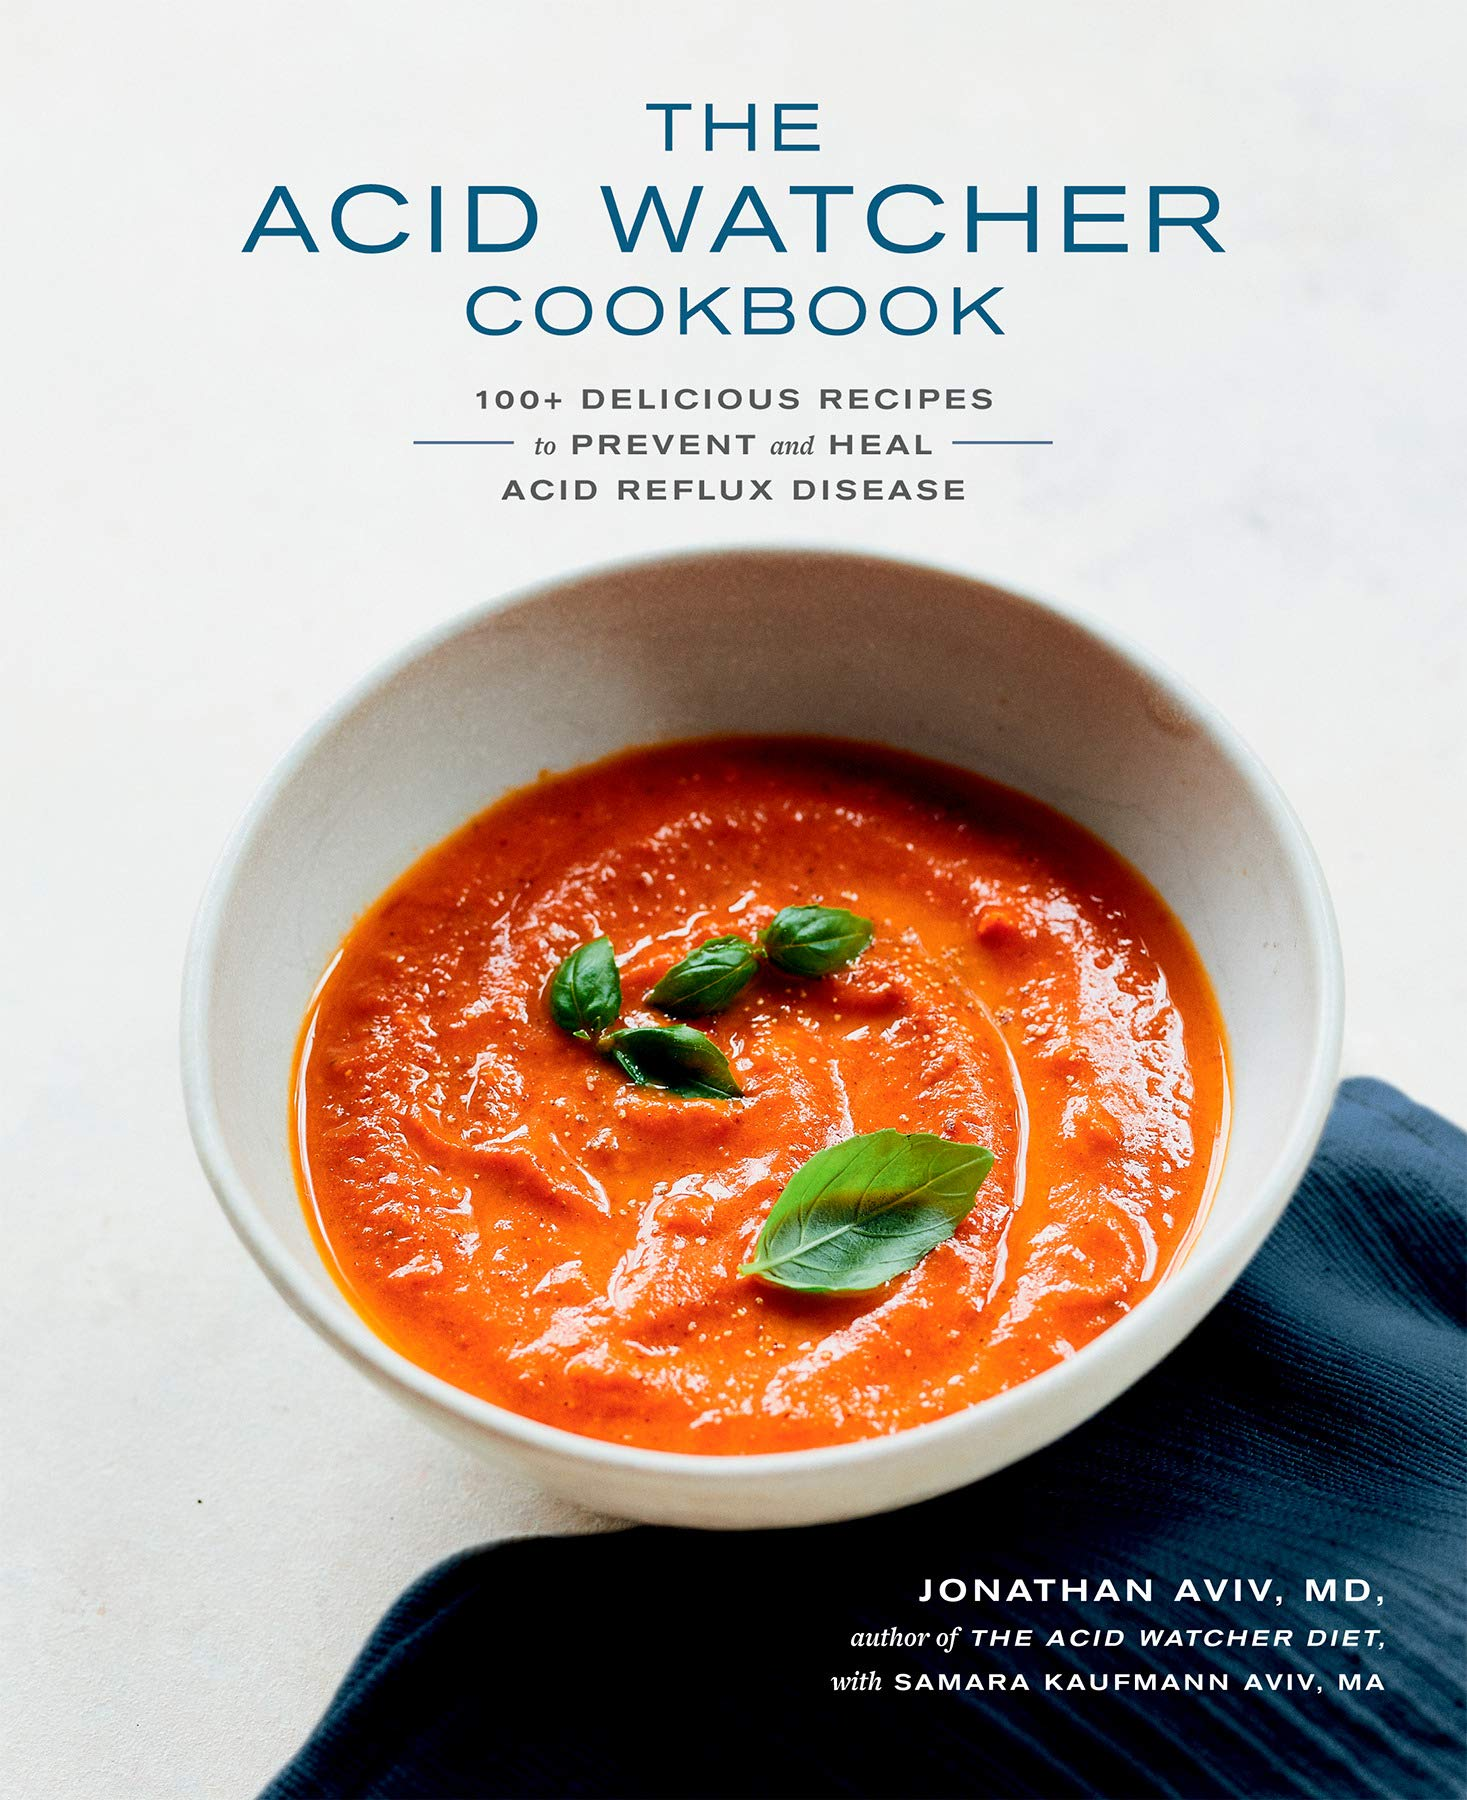 The Acid Watcher Cookbook  100+ Delicious Recipes To Prevent And Heal Acid Reflux Disease